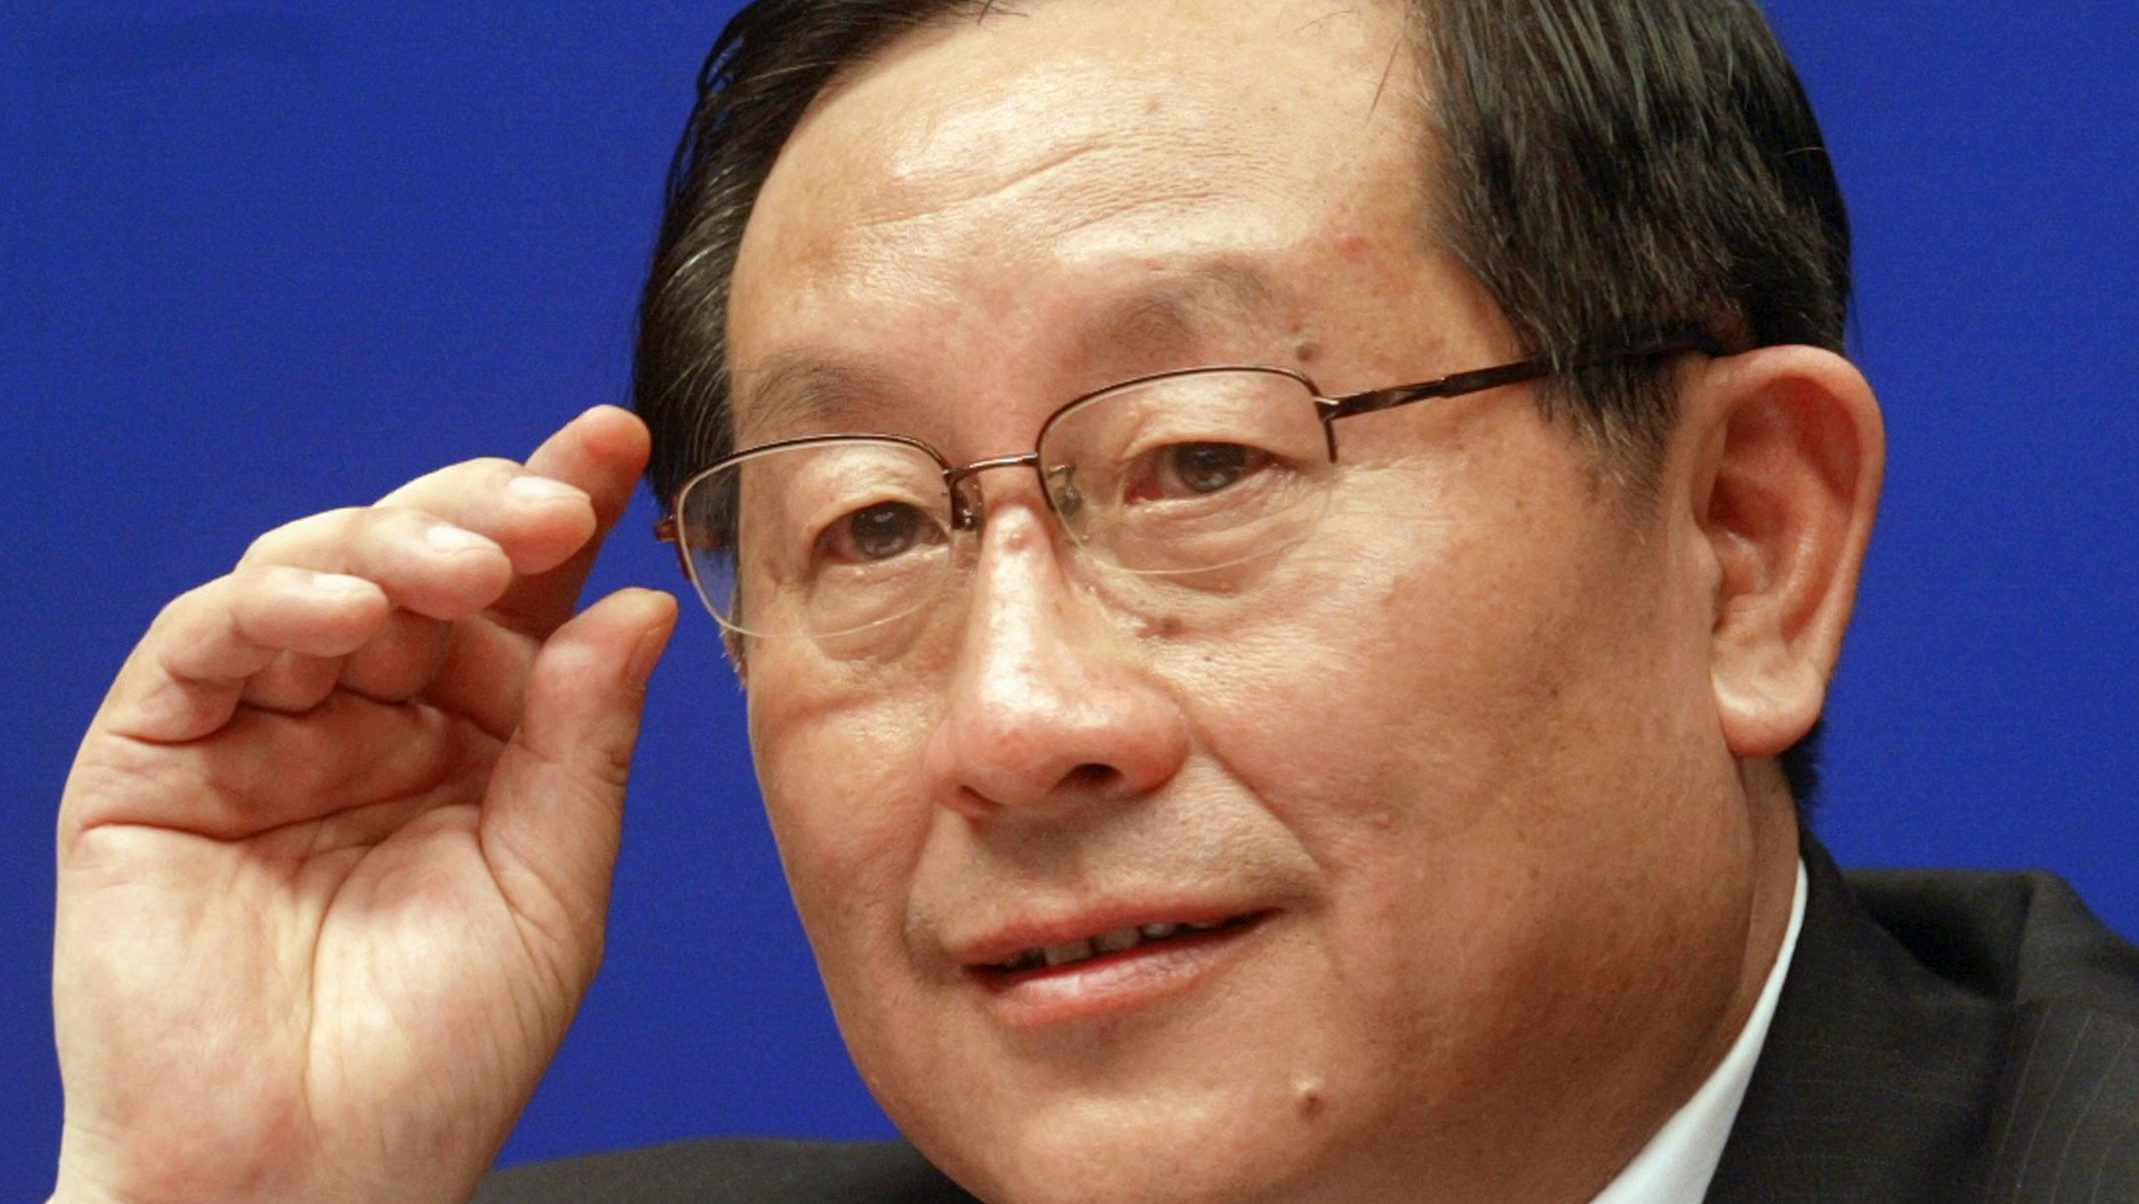 Wan Gang, China's minister of science and technology, gestures during a news conference on China's Scientific Actions on Climate Change in Beijing June 14, 2007. REUTERS/China Daily (CHINA)